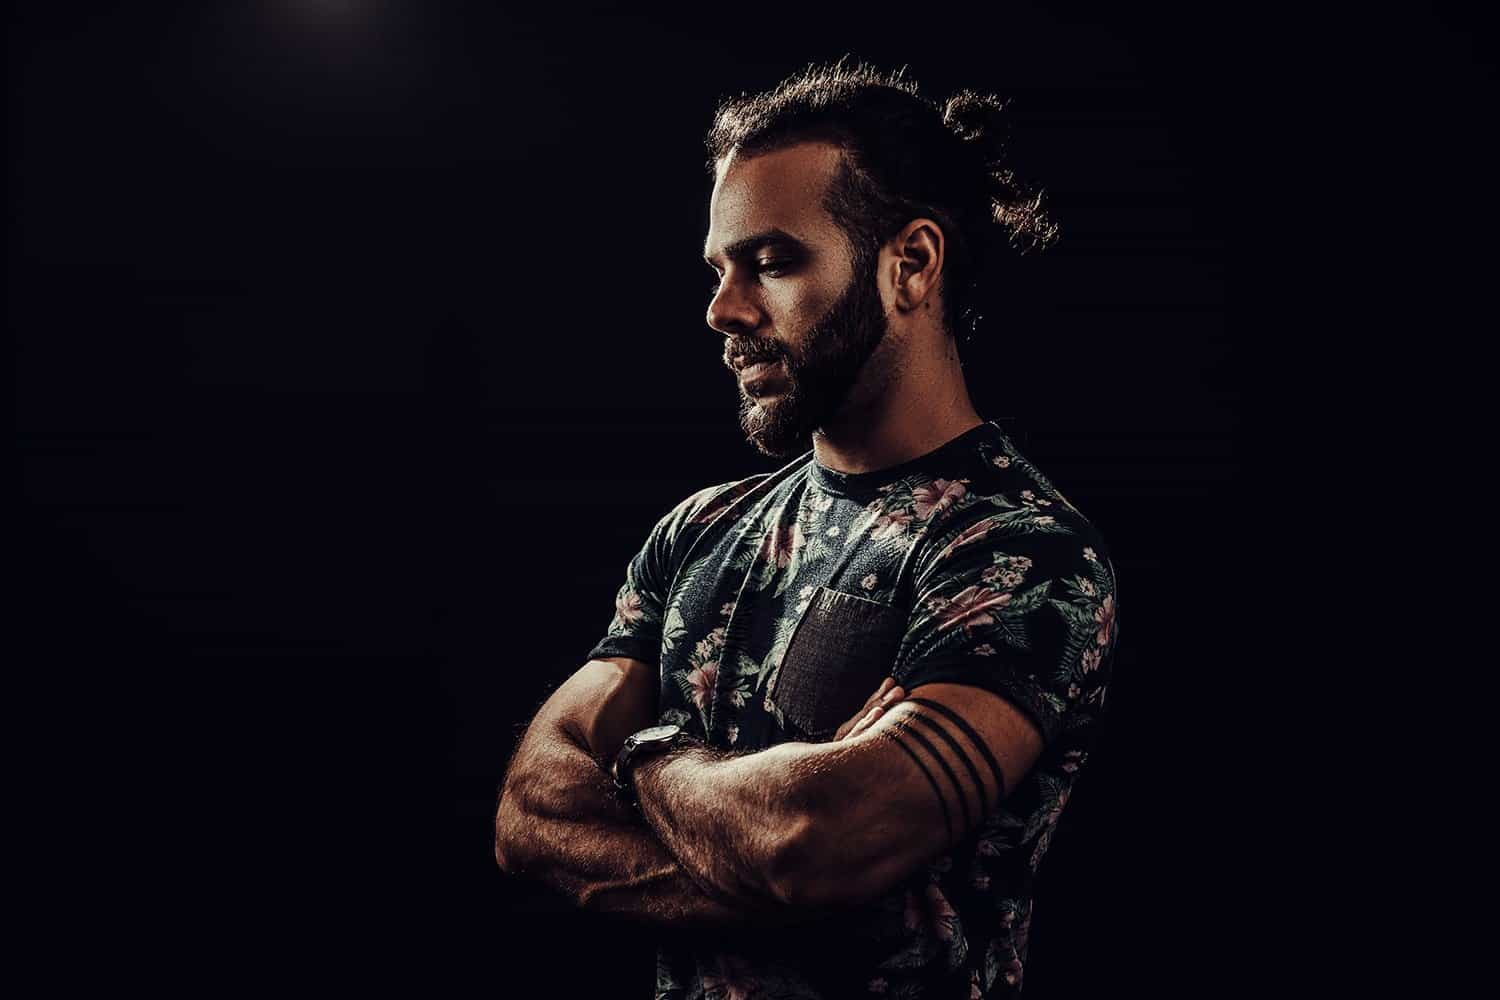 peter kolter manbun tattooed the electric mud musician fort myers